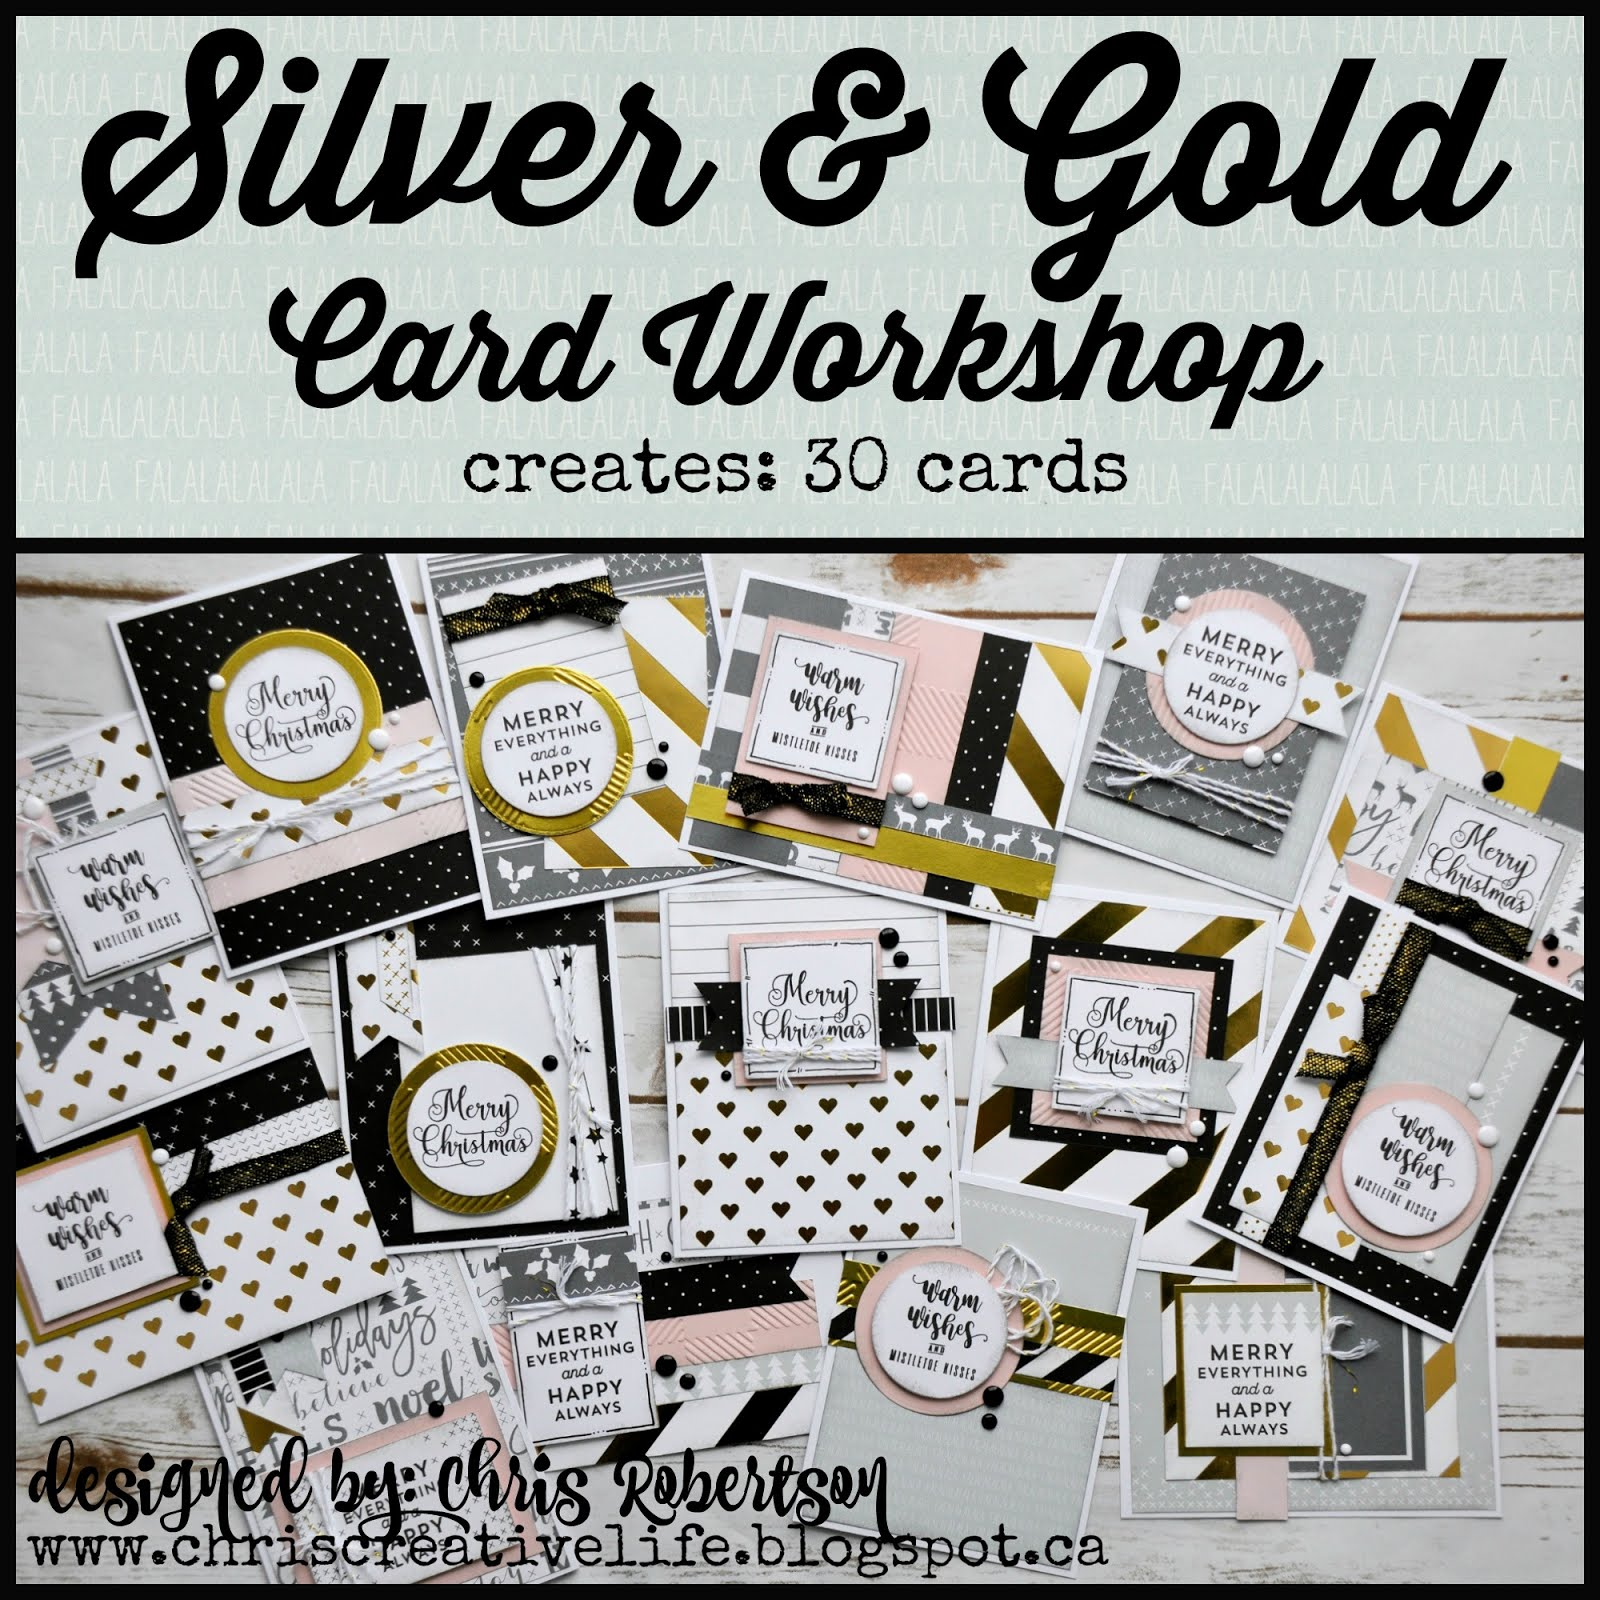 Silver & Gold Cardmaking Workshop